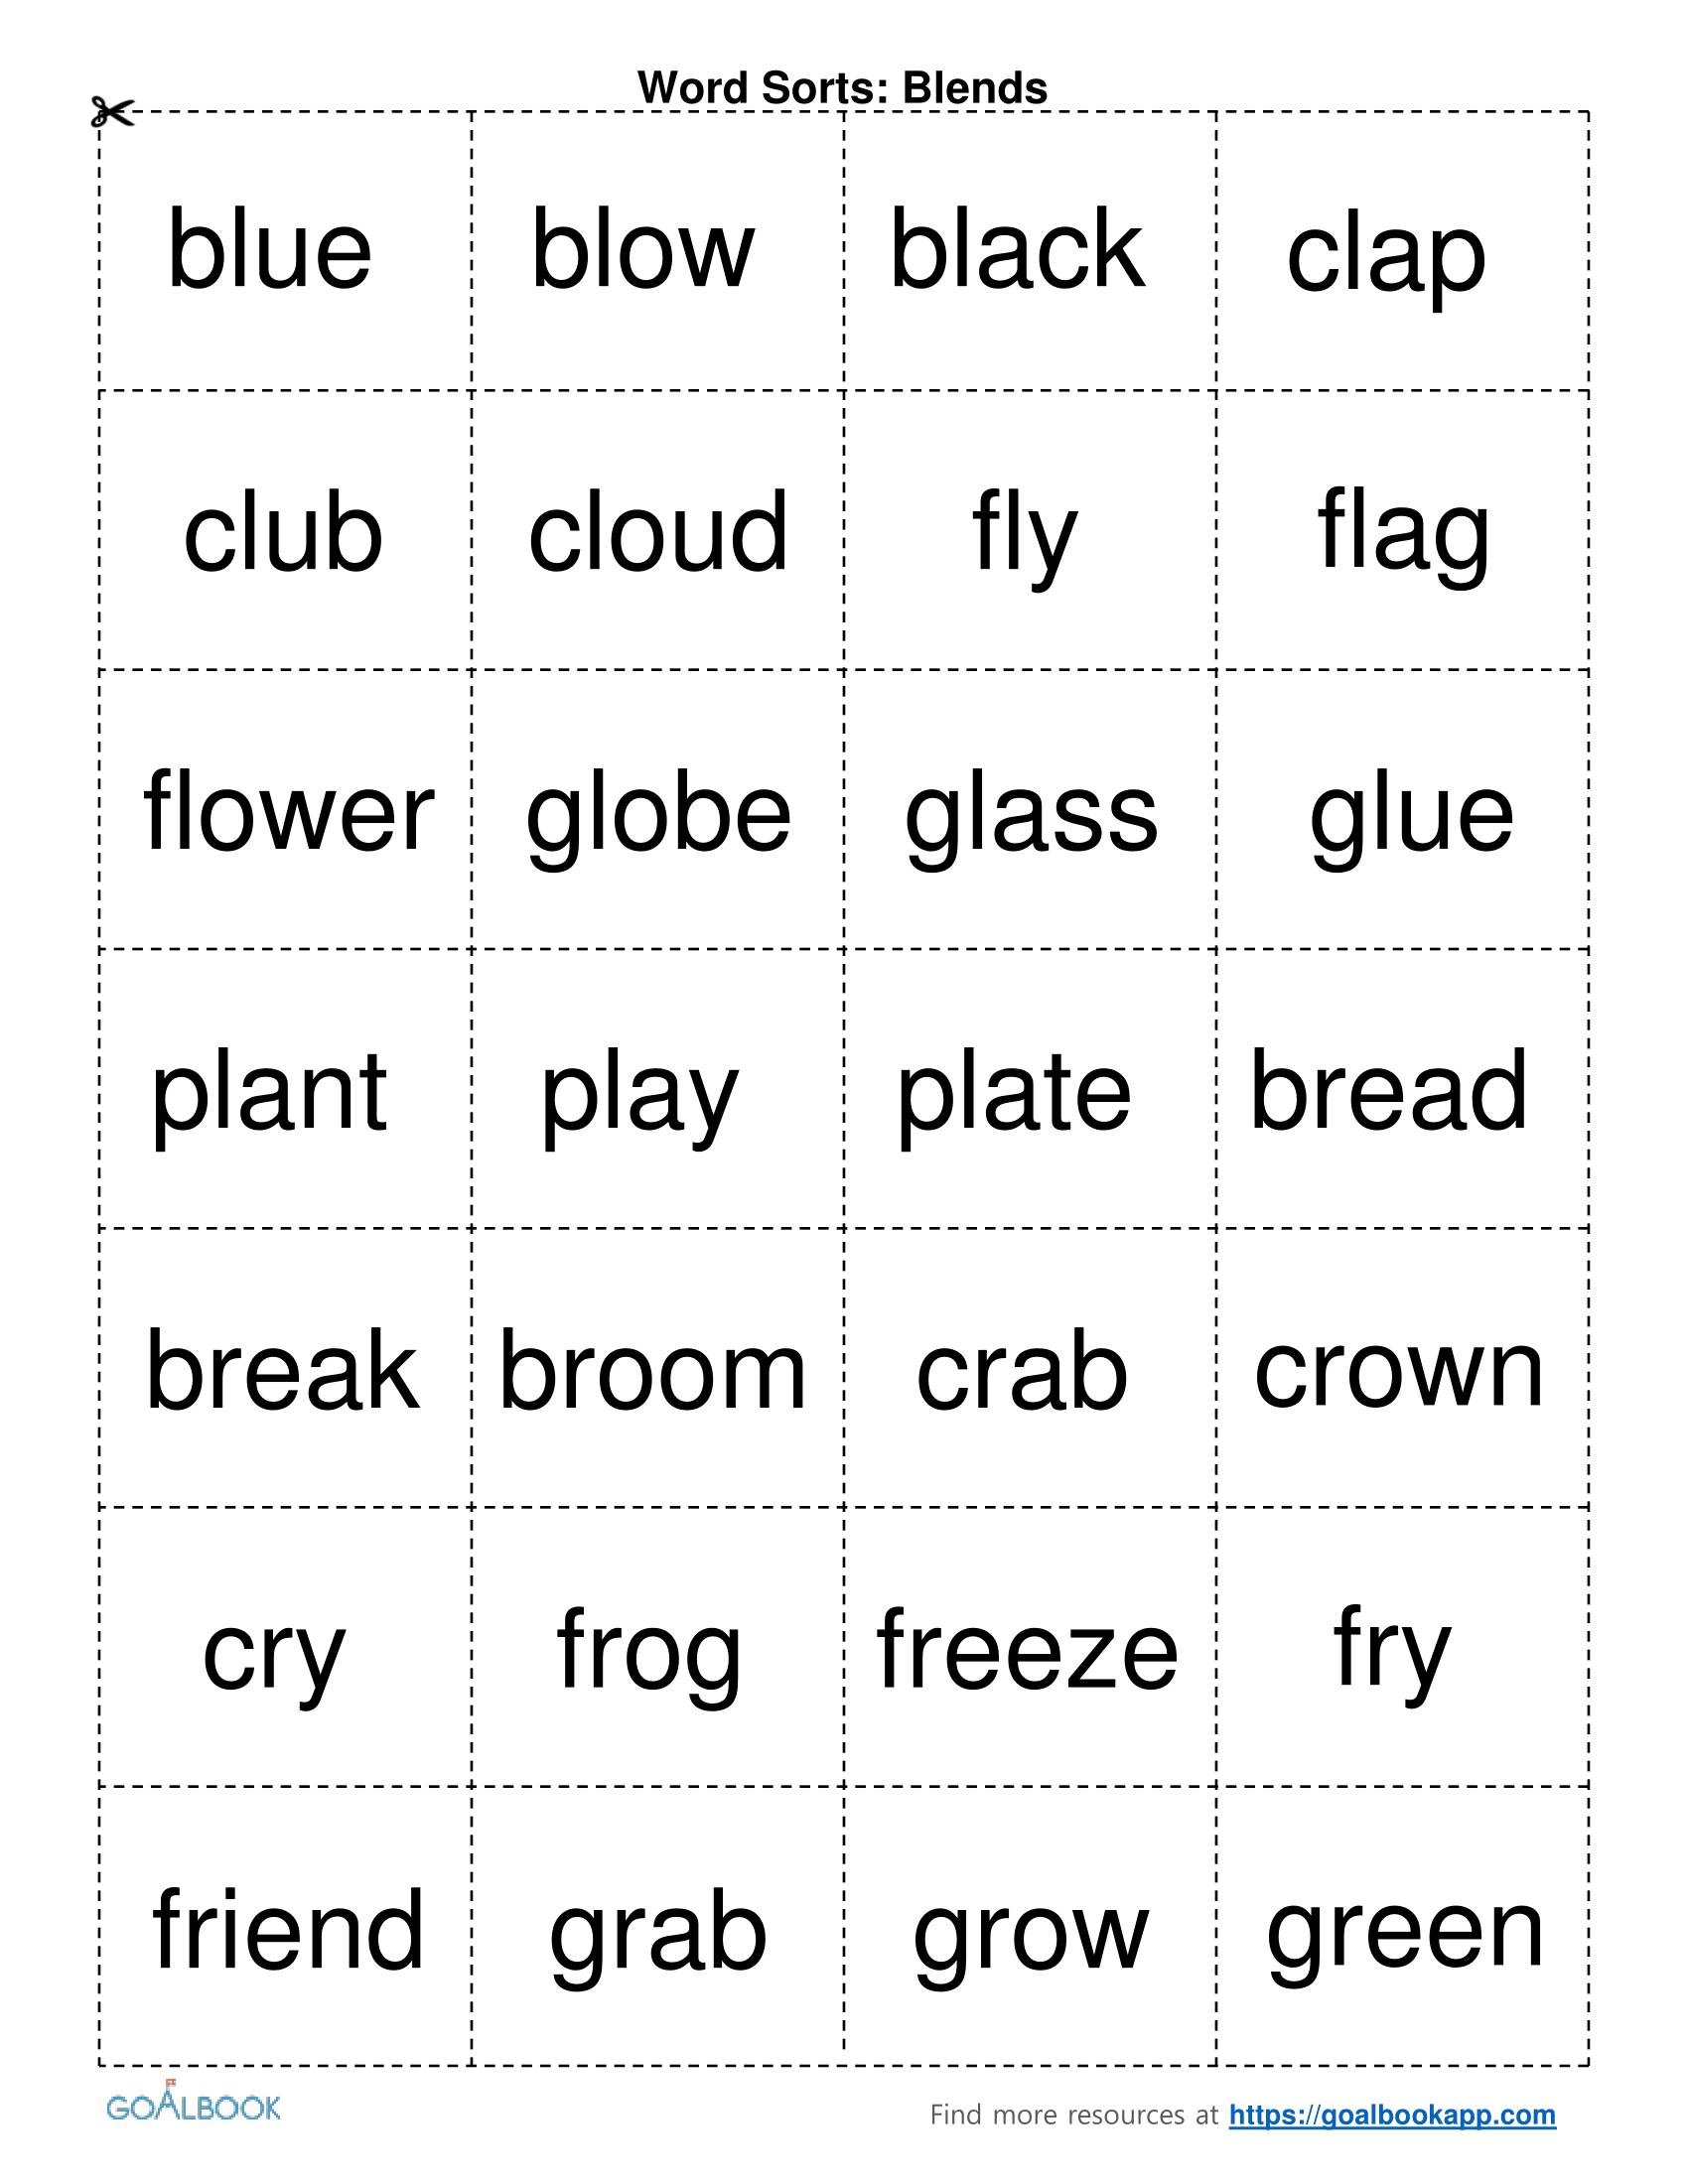 Word Sort Pictures To Pin